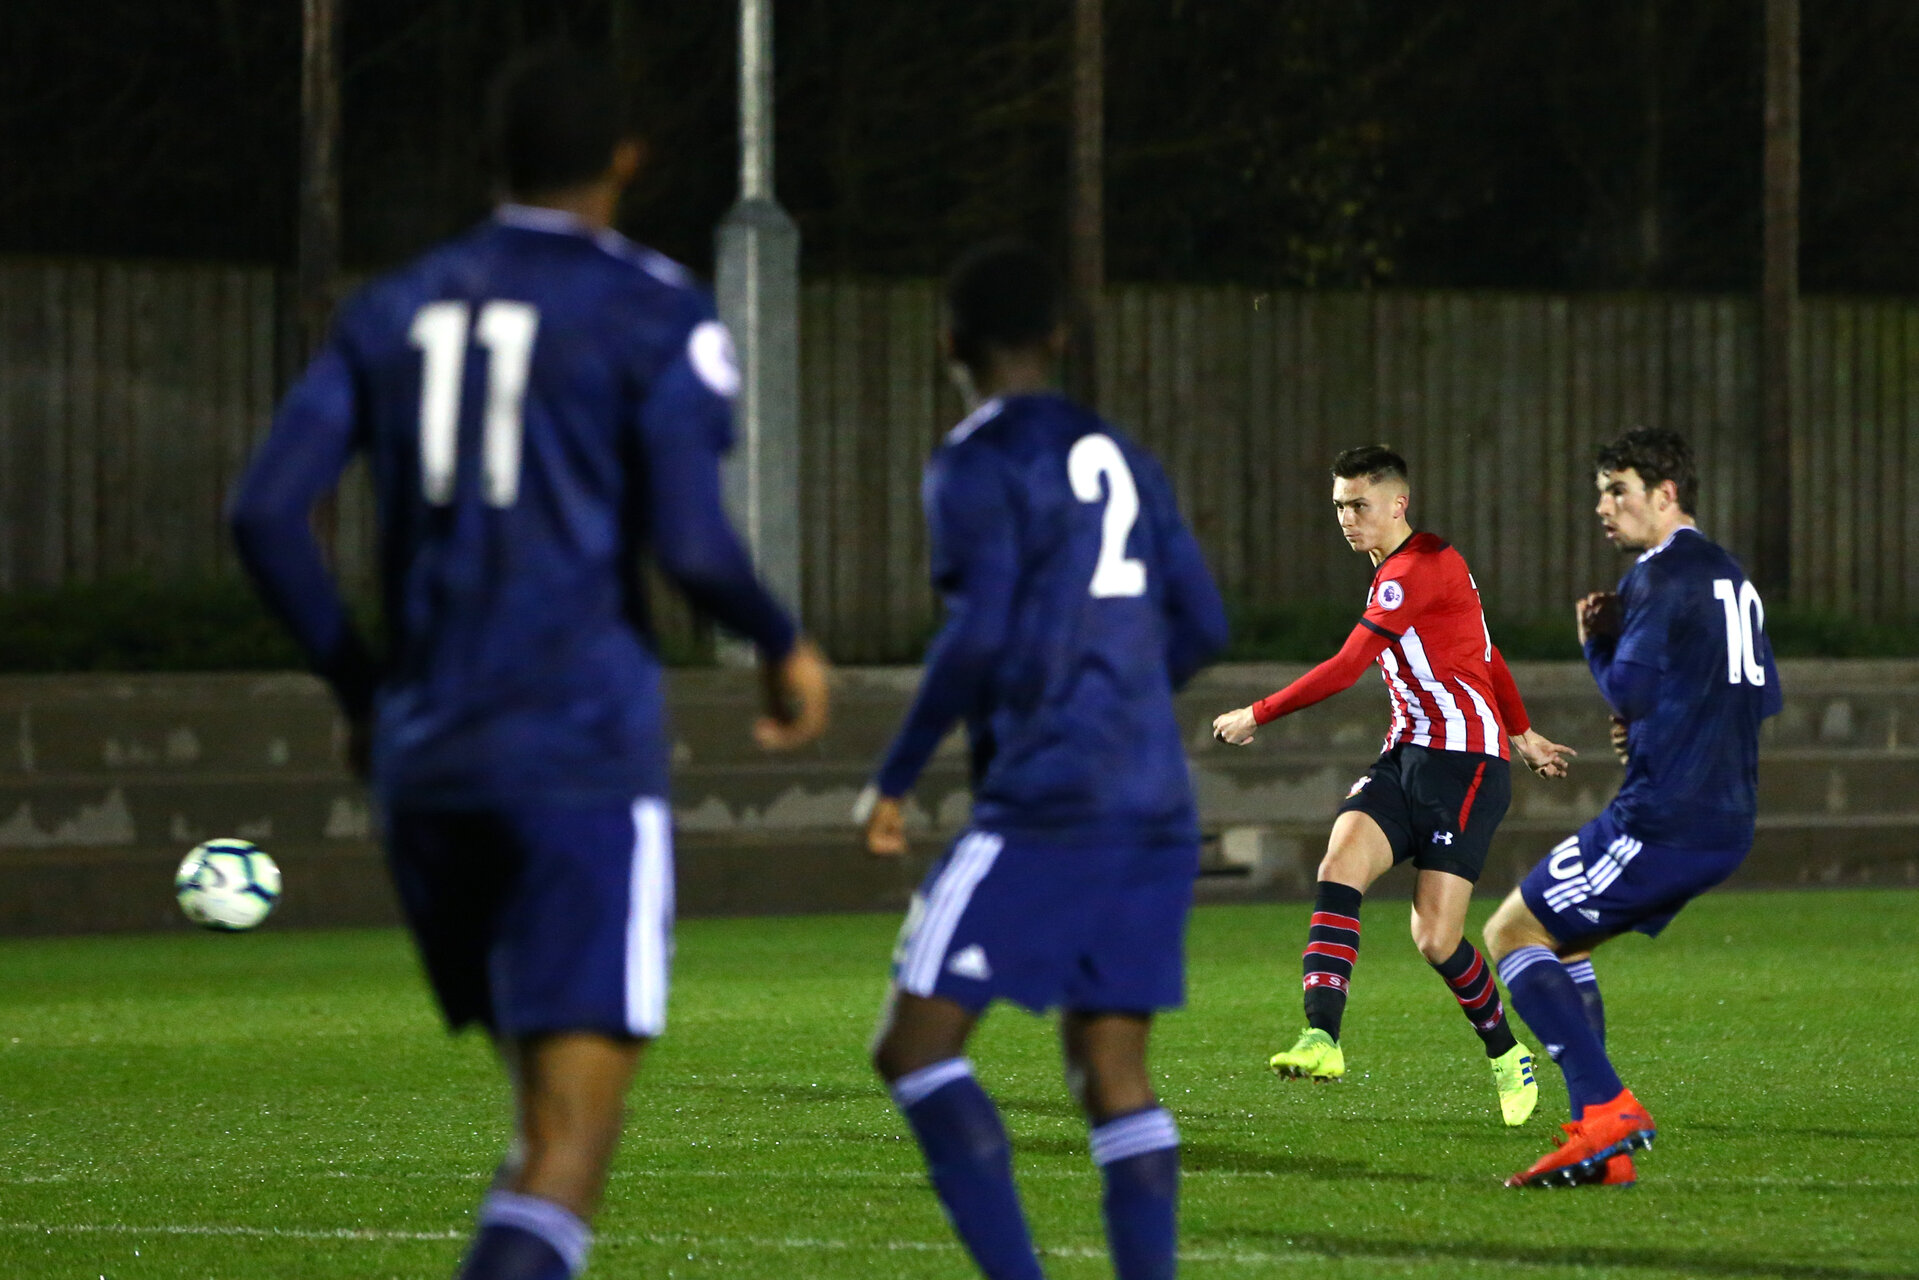 SOUTHAMPTON, ENGLAND - FEBRUARY 15: Will Smallbone of Southampton FC (right) scores during the U23s PL2 match between Southampton FC and Fulham FC pictured at Staplewood Complex on February 15, 2019 in Southampton, England. (Photo by James Bridle - Southampton FC/Southampton FC via Getty Images)